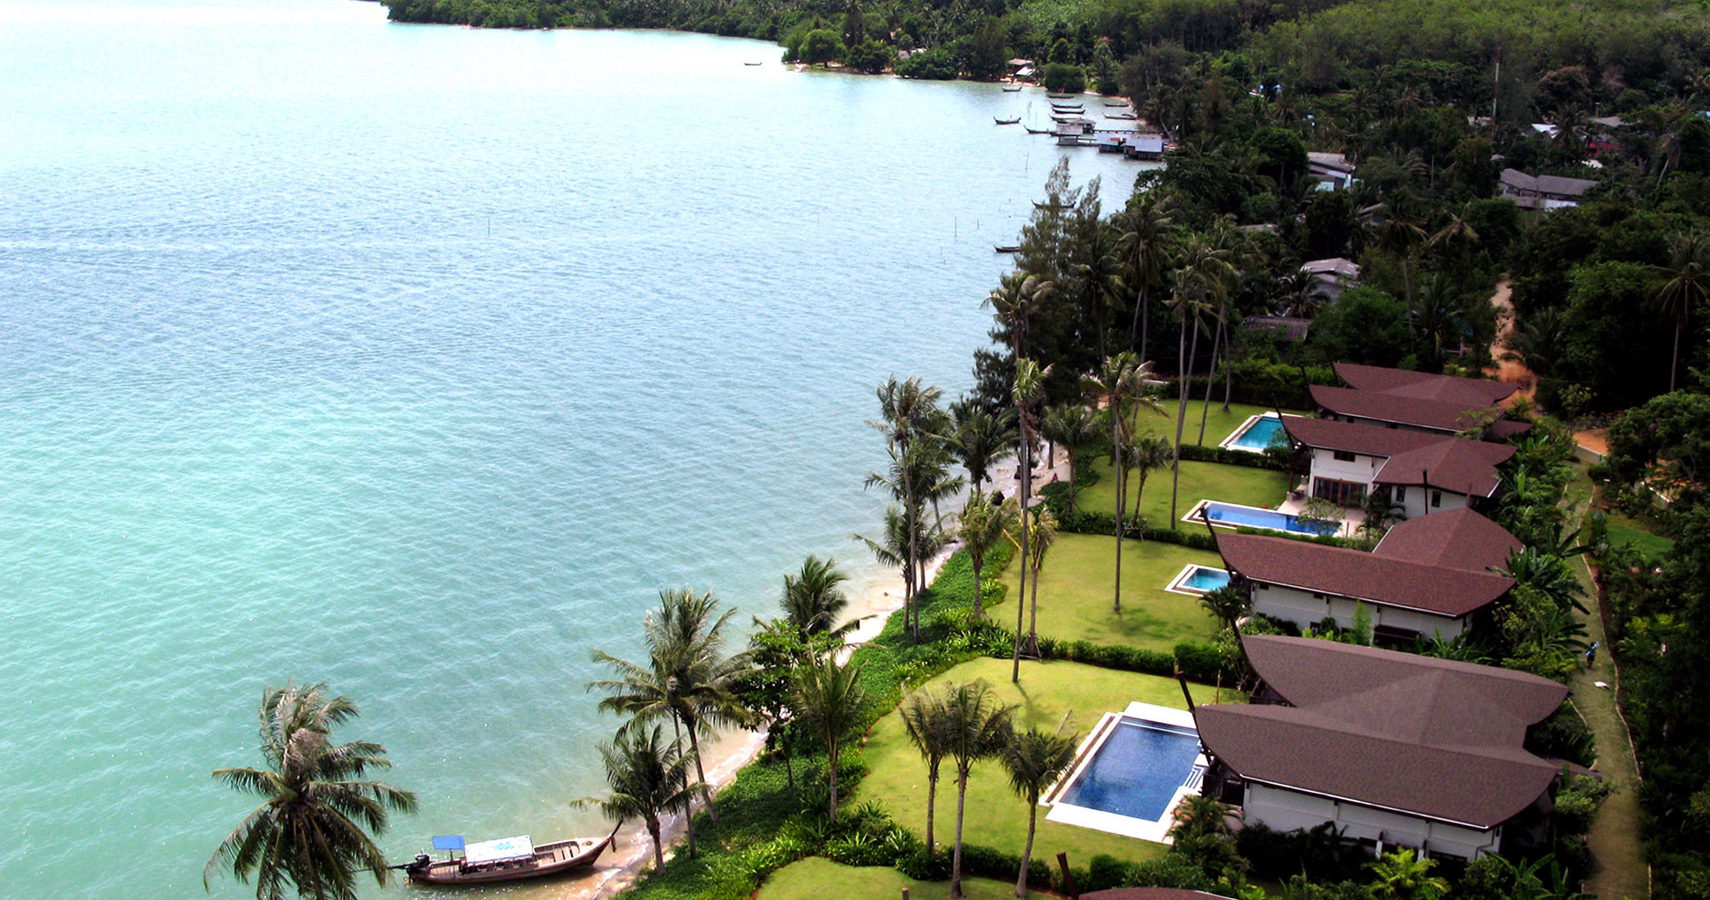 On the Beach 5 Bed Pool Villa Coconut Island for Sale